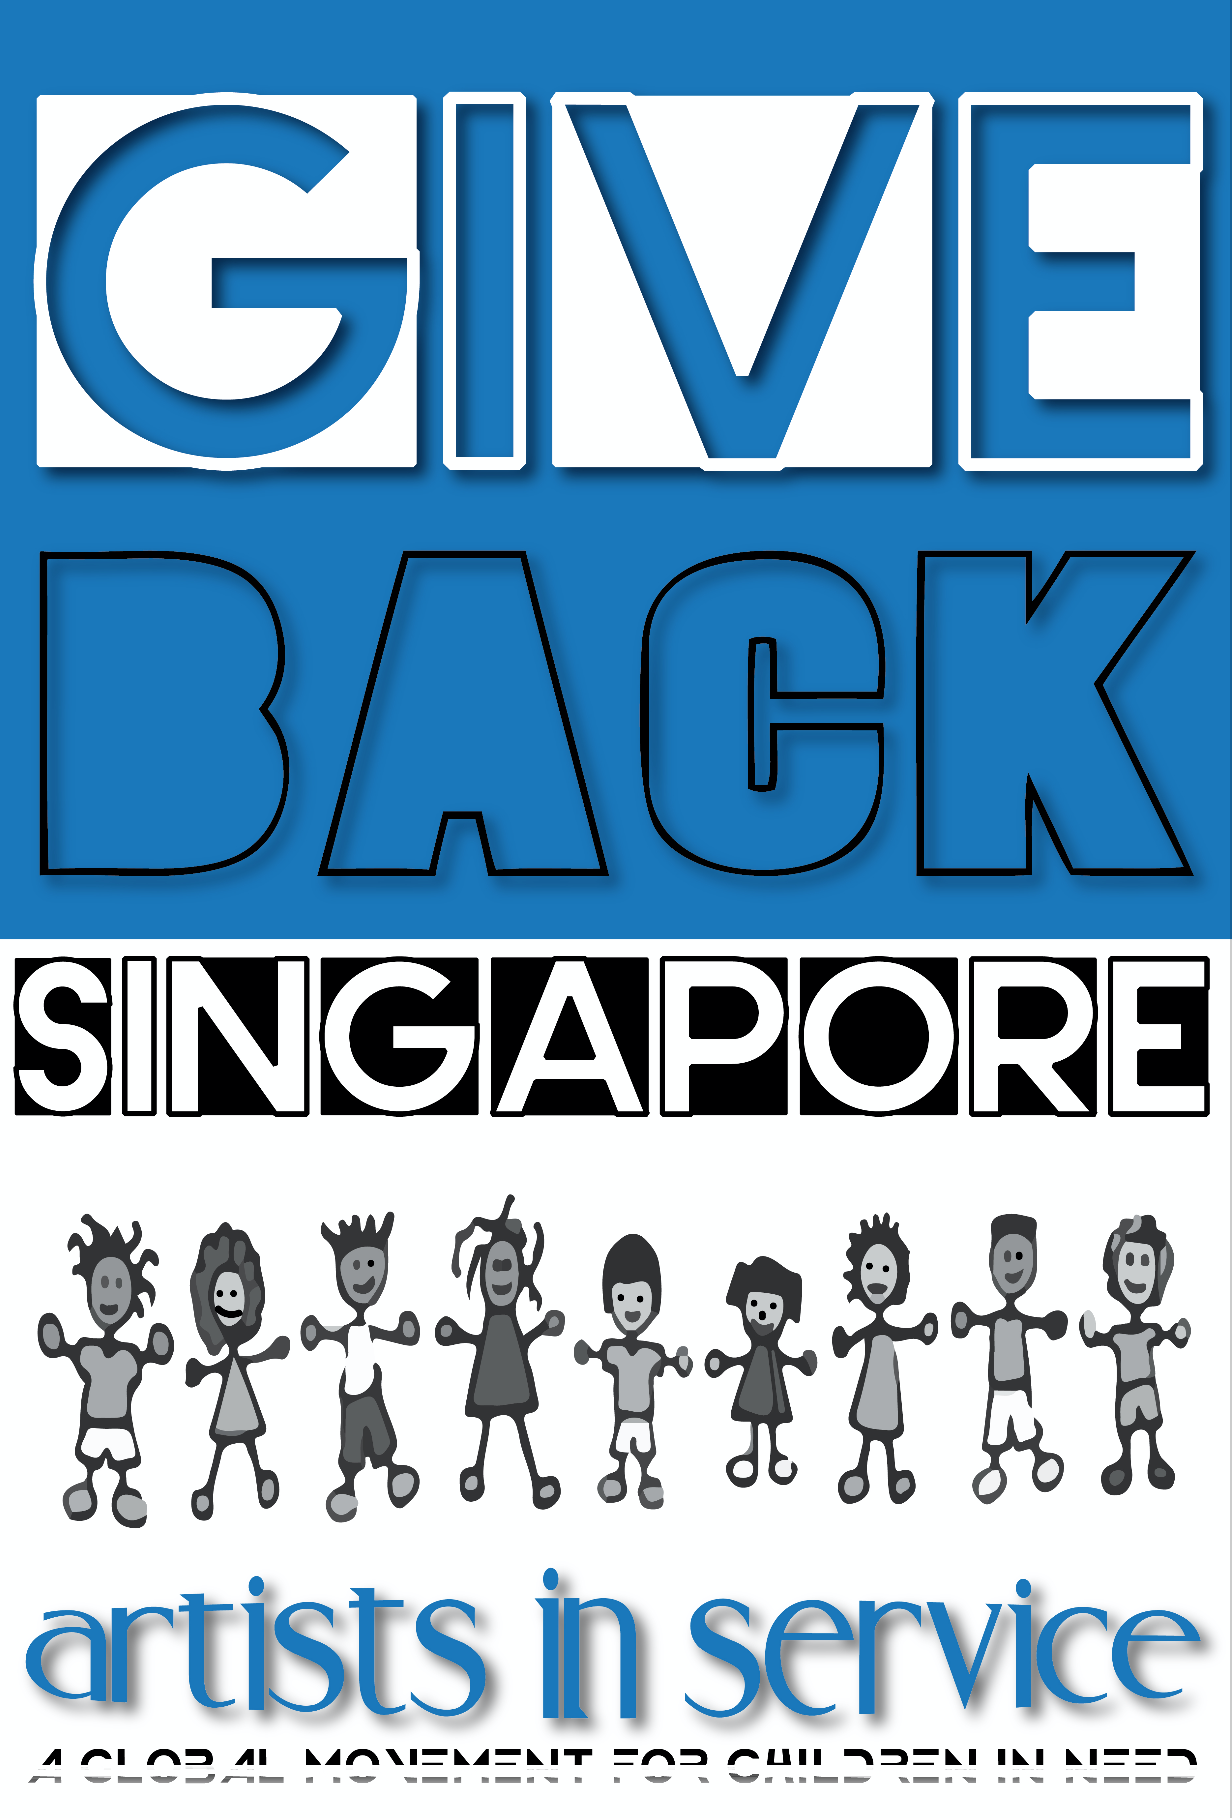 Give Back Singapore - With the support of Evgeny Tugolukov an enternenuer & philanthropist / David Smith co founder of The SIngJazz Festival SLH would create a unique version of Give Back featuring the top artists, musicians and entertainers in the region. The local charity MILK (mainly I love kids) featured the launch of music video at their annual gala dinner at the Ritz Carlton where each year they raise upwards of 2 million dollars to support MILK